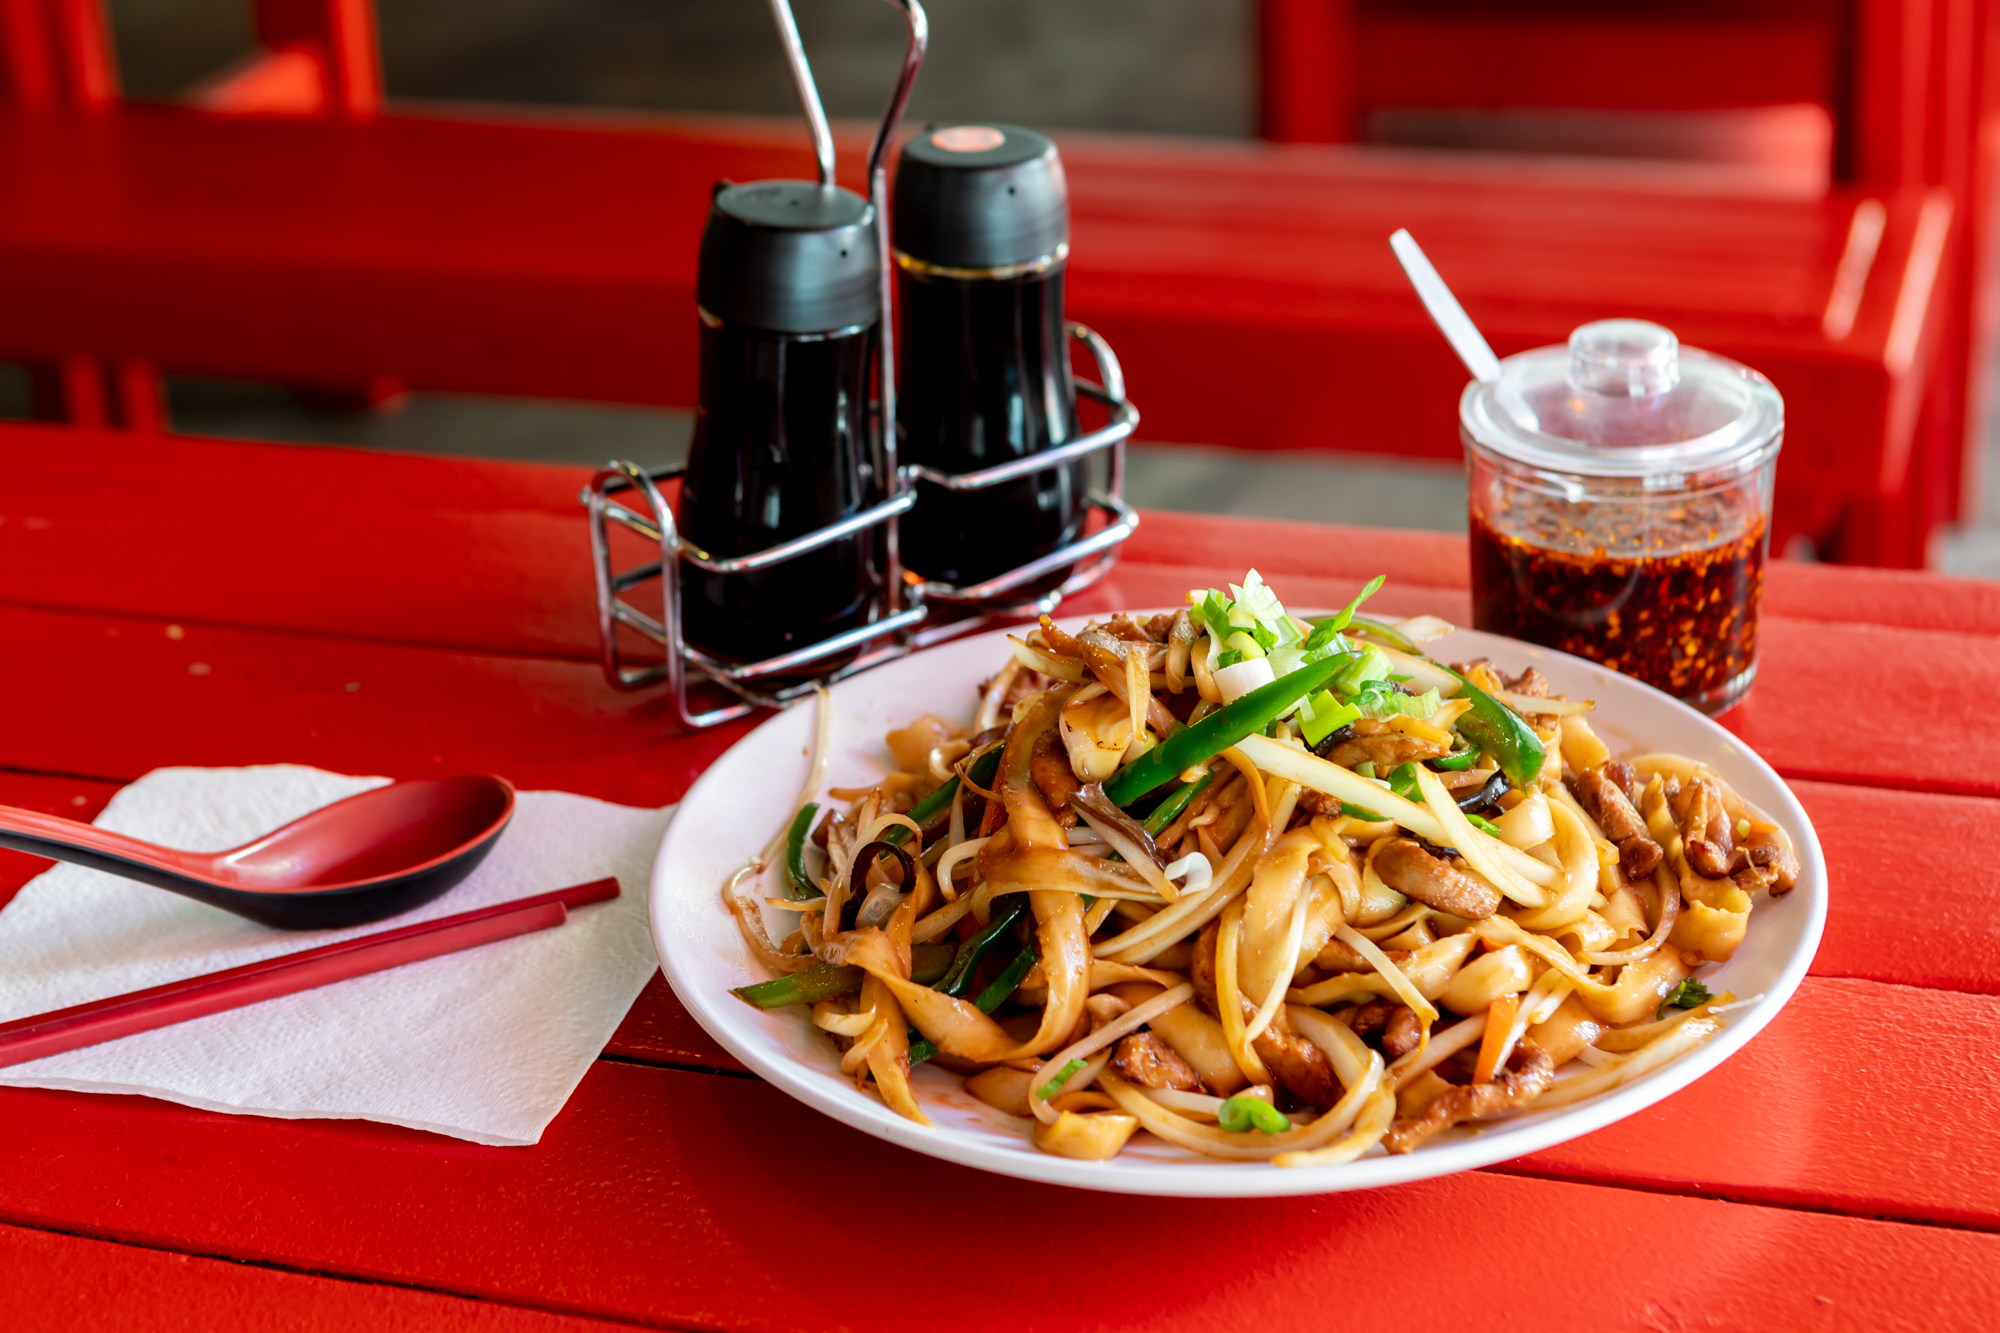 A plate of knife-cut noodles on a red table with soy sauce dispensers and chile sauce on the side